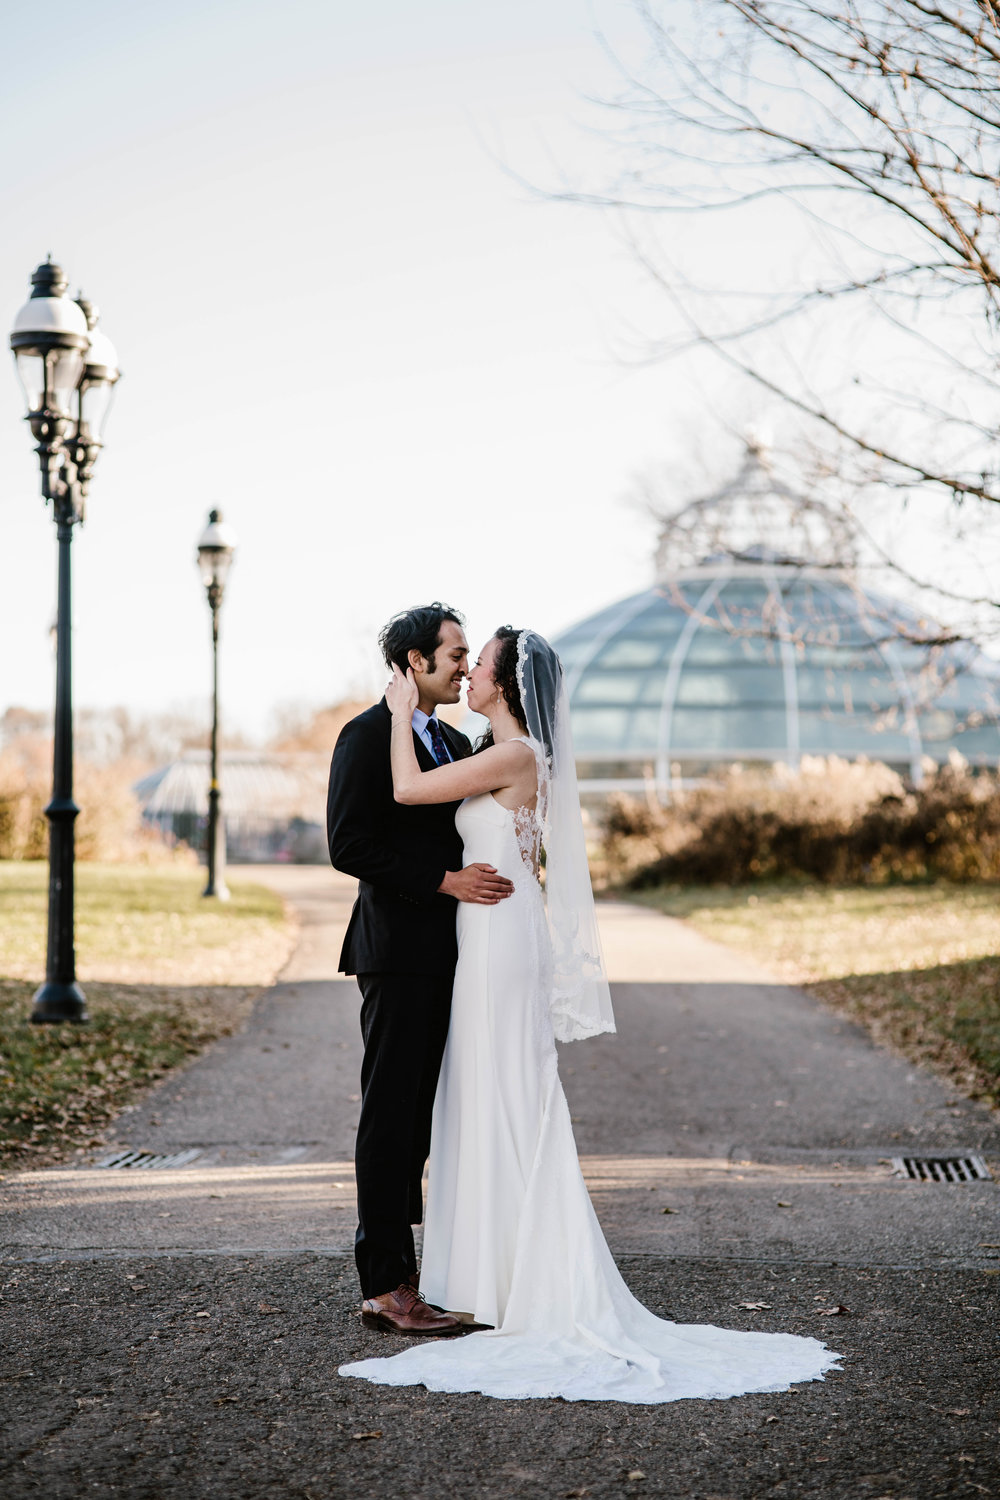 Kristy Lumsden Photography_Pittsburgh Wedding Photographer_43.jpg